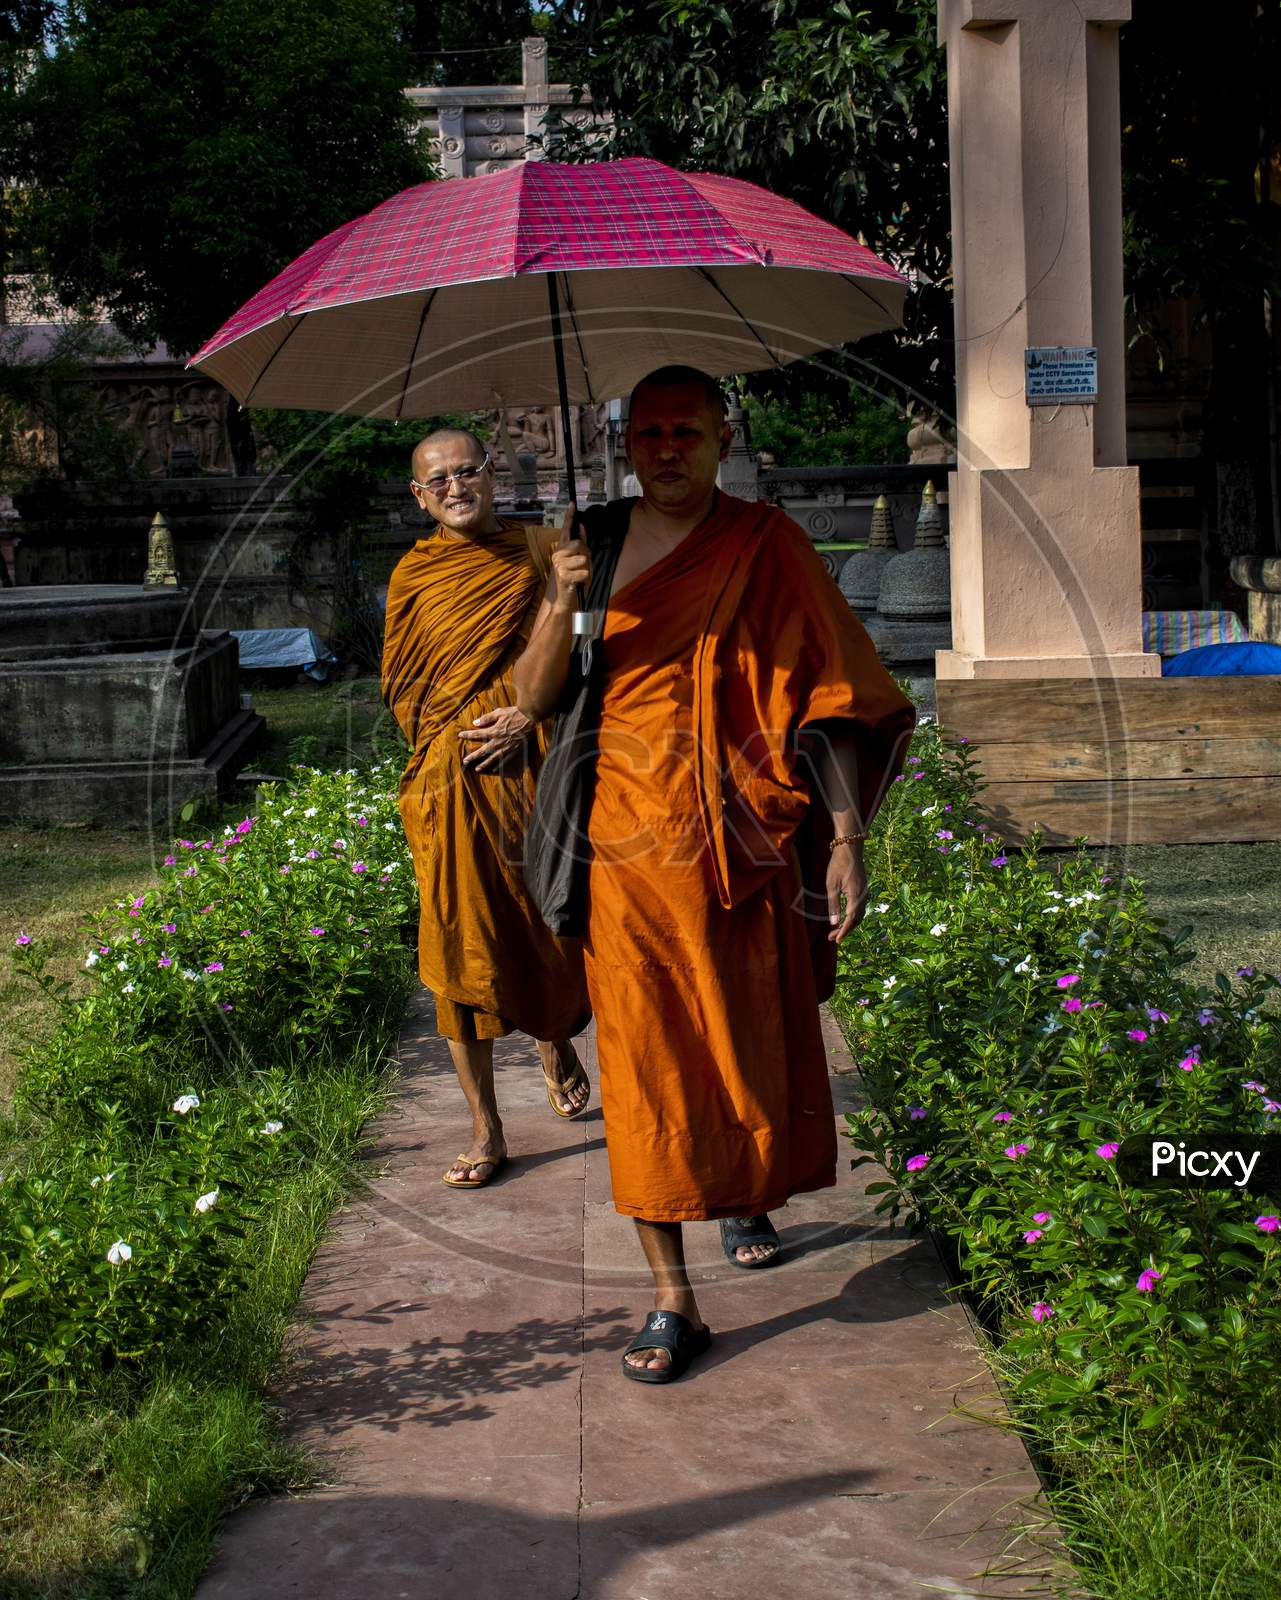 Buddhist Monk Holding Umbrella And Walking In a Pathway